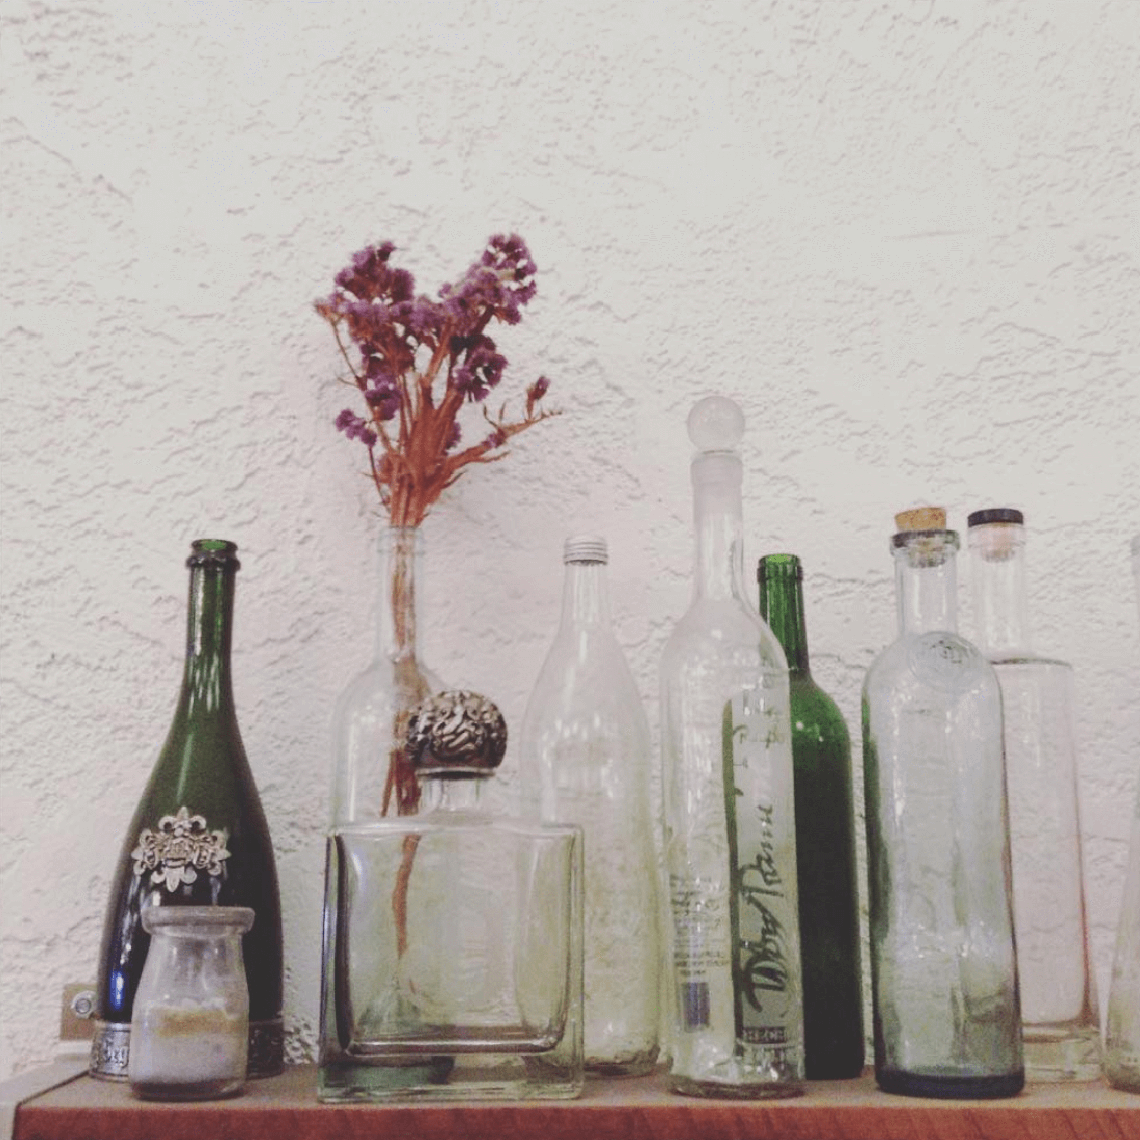 It All Began With a Beautiful Bottle